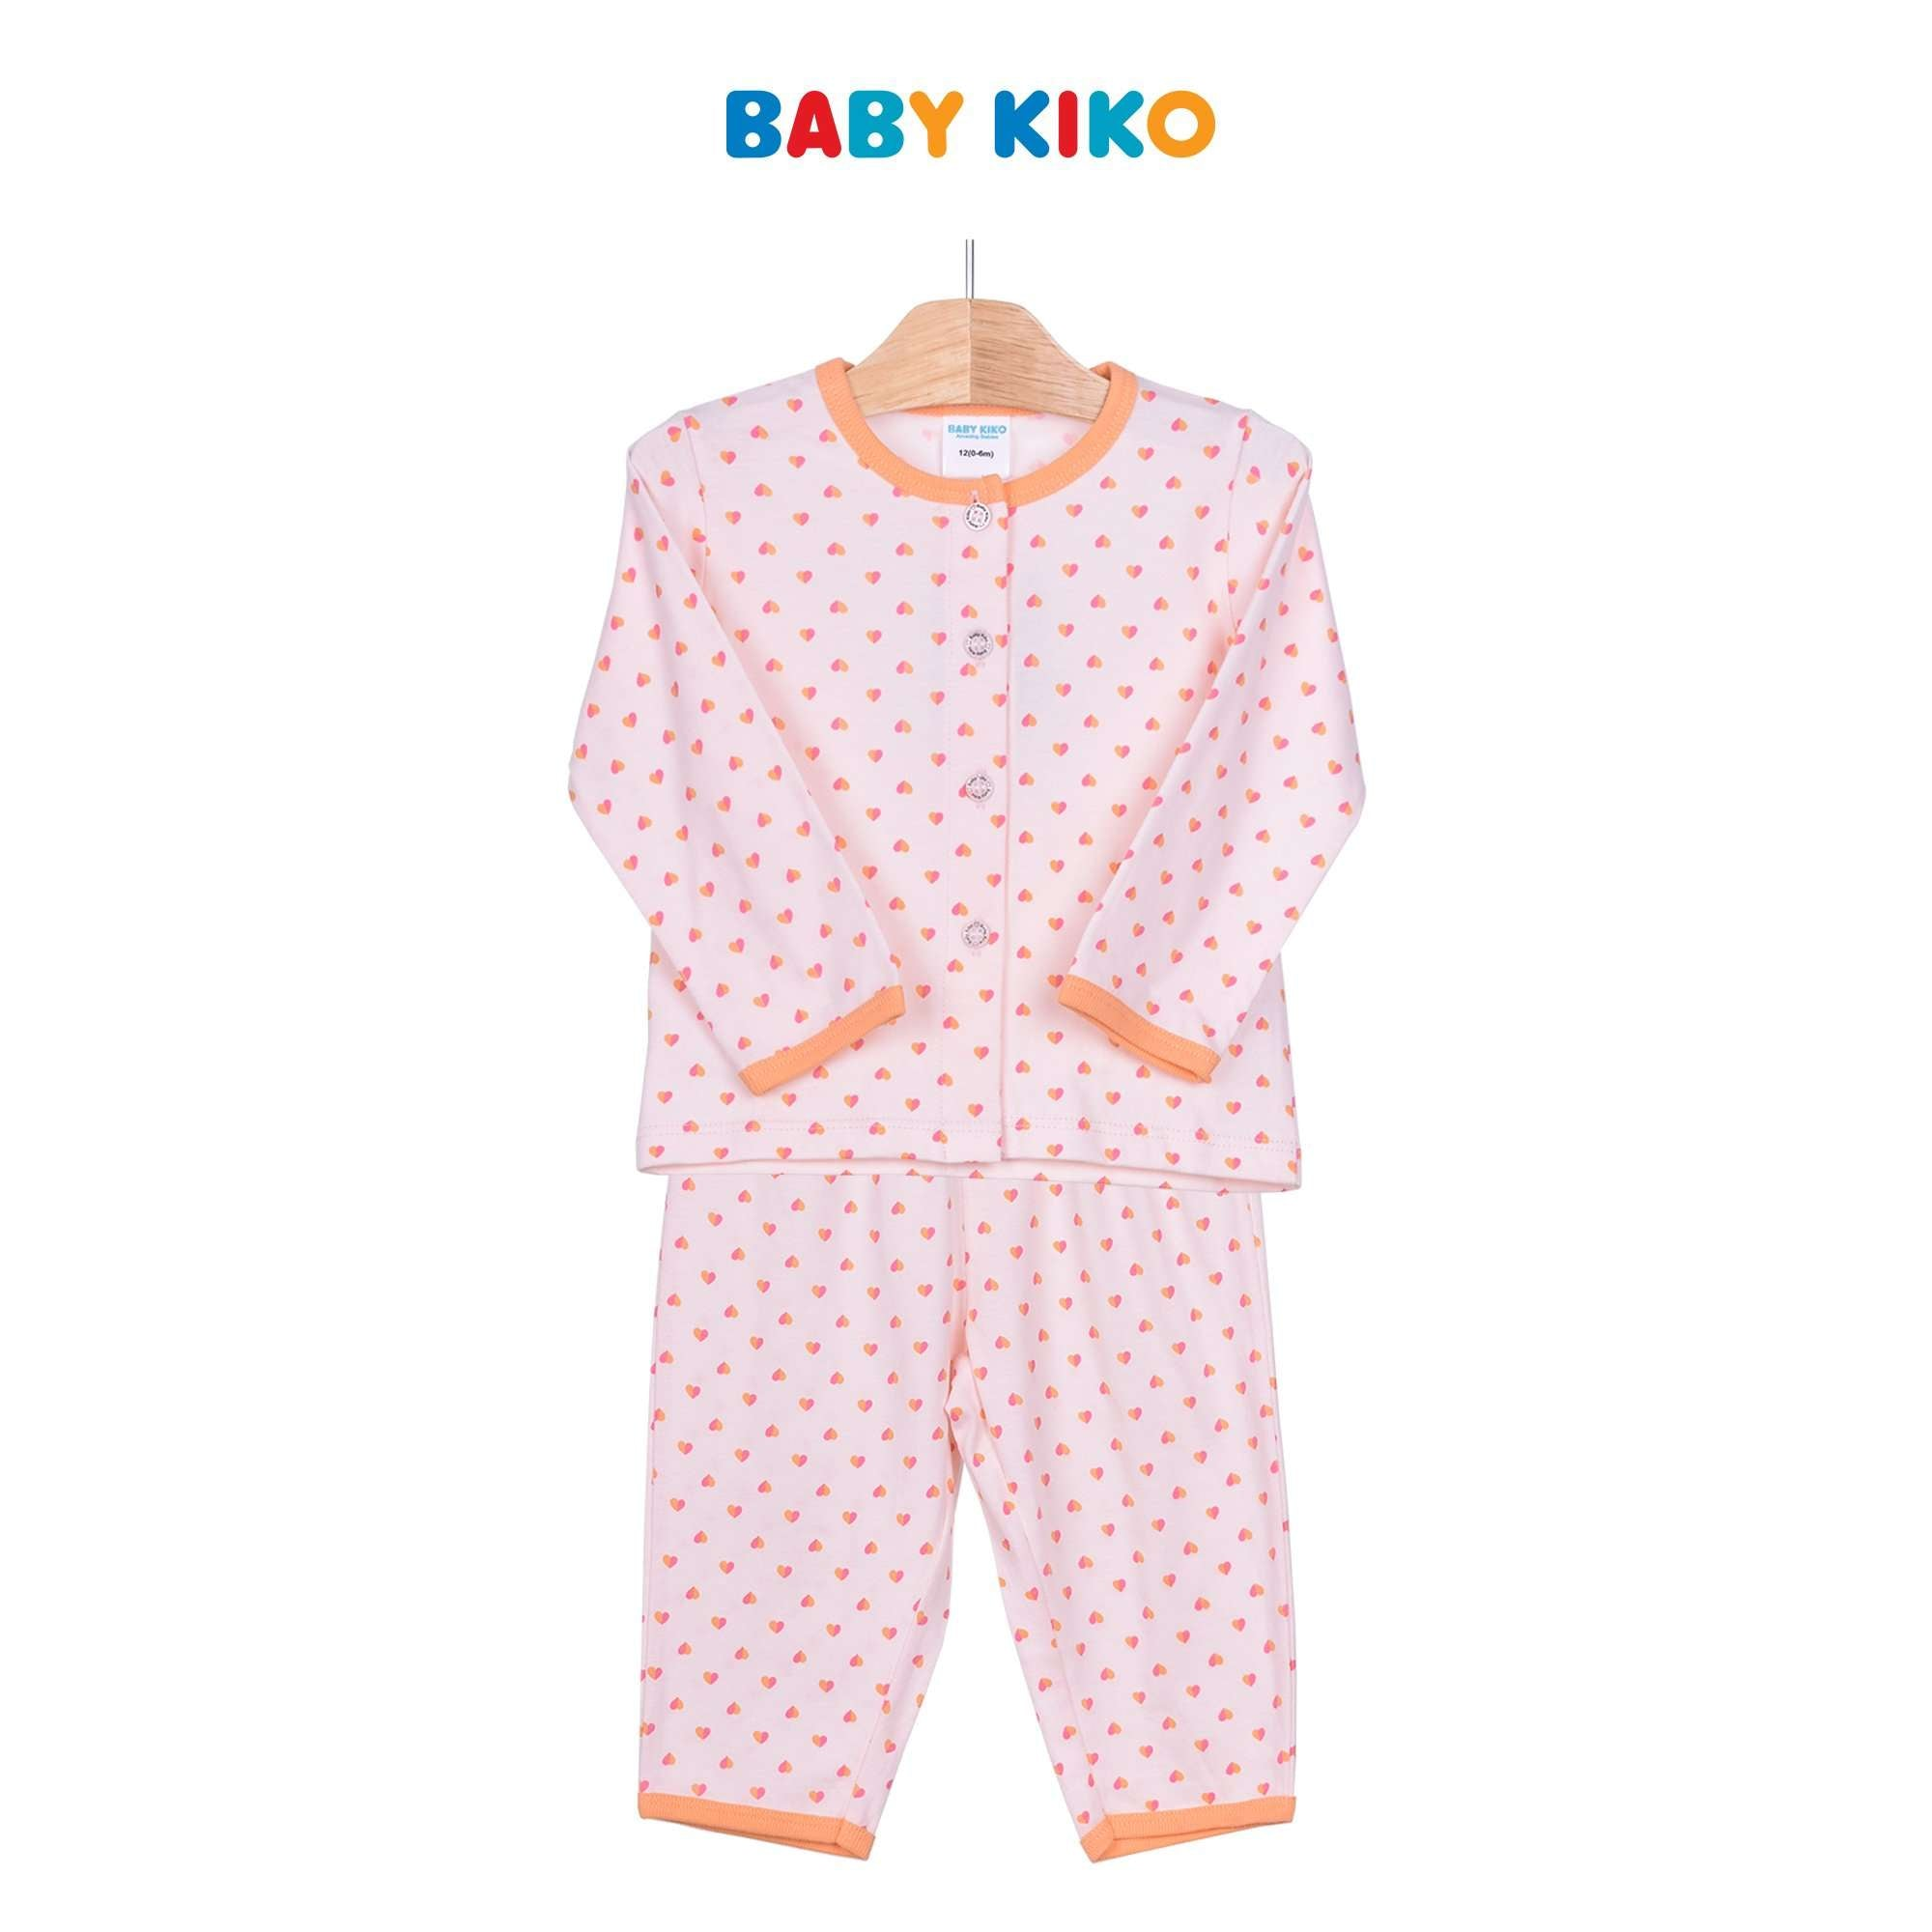 Baby KIKO Baby Girl Long Sleeve Long Pants Suit - Light Orange 320152-431 : Buy Baby KIKO online at CMG.MY